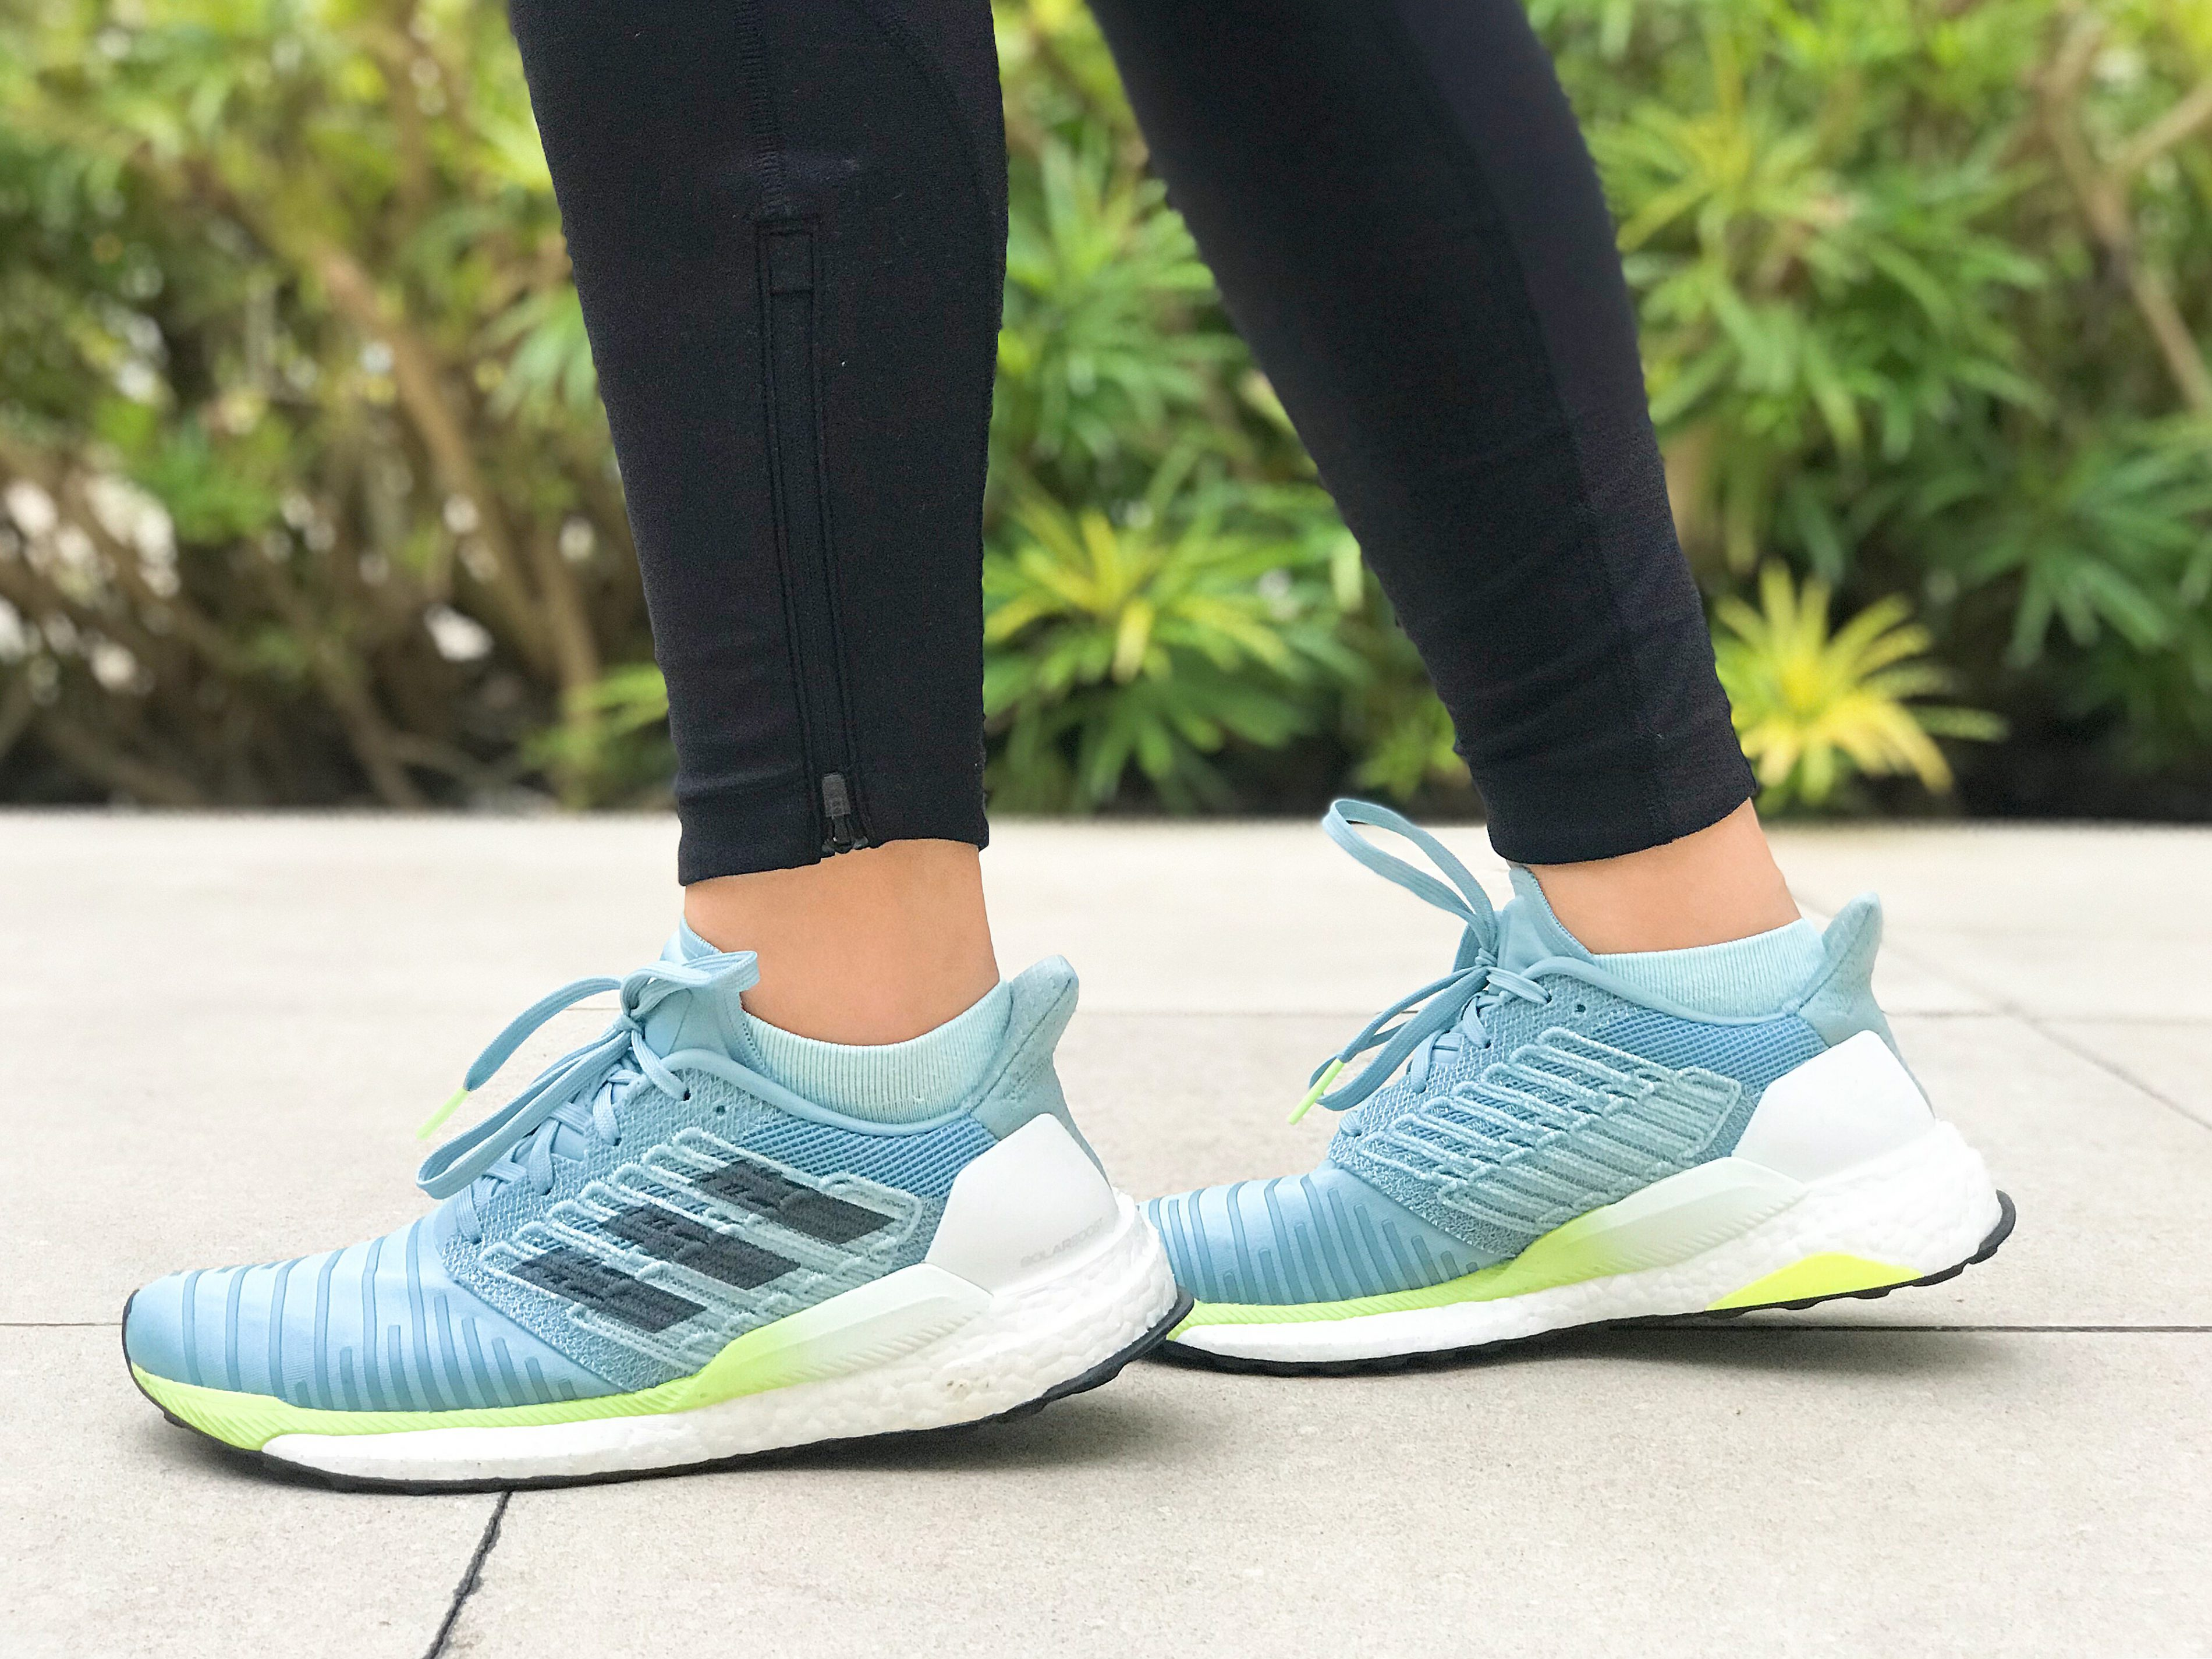 8250d888f5d01 Review  Wearing adidas Solar Boost On Easy Run Days